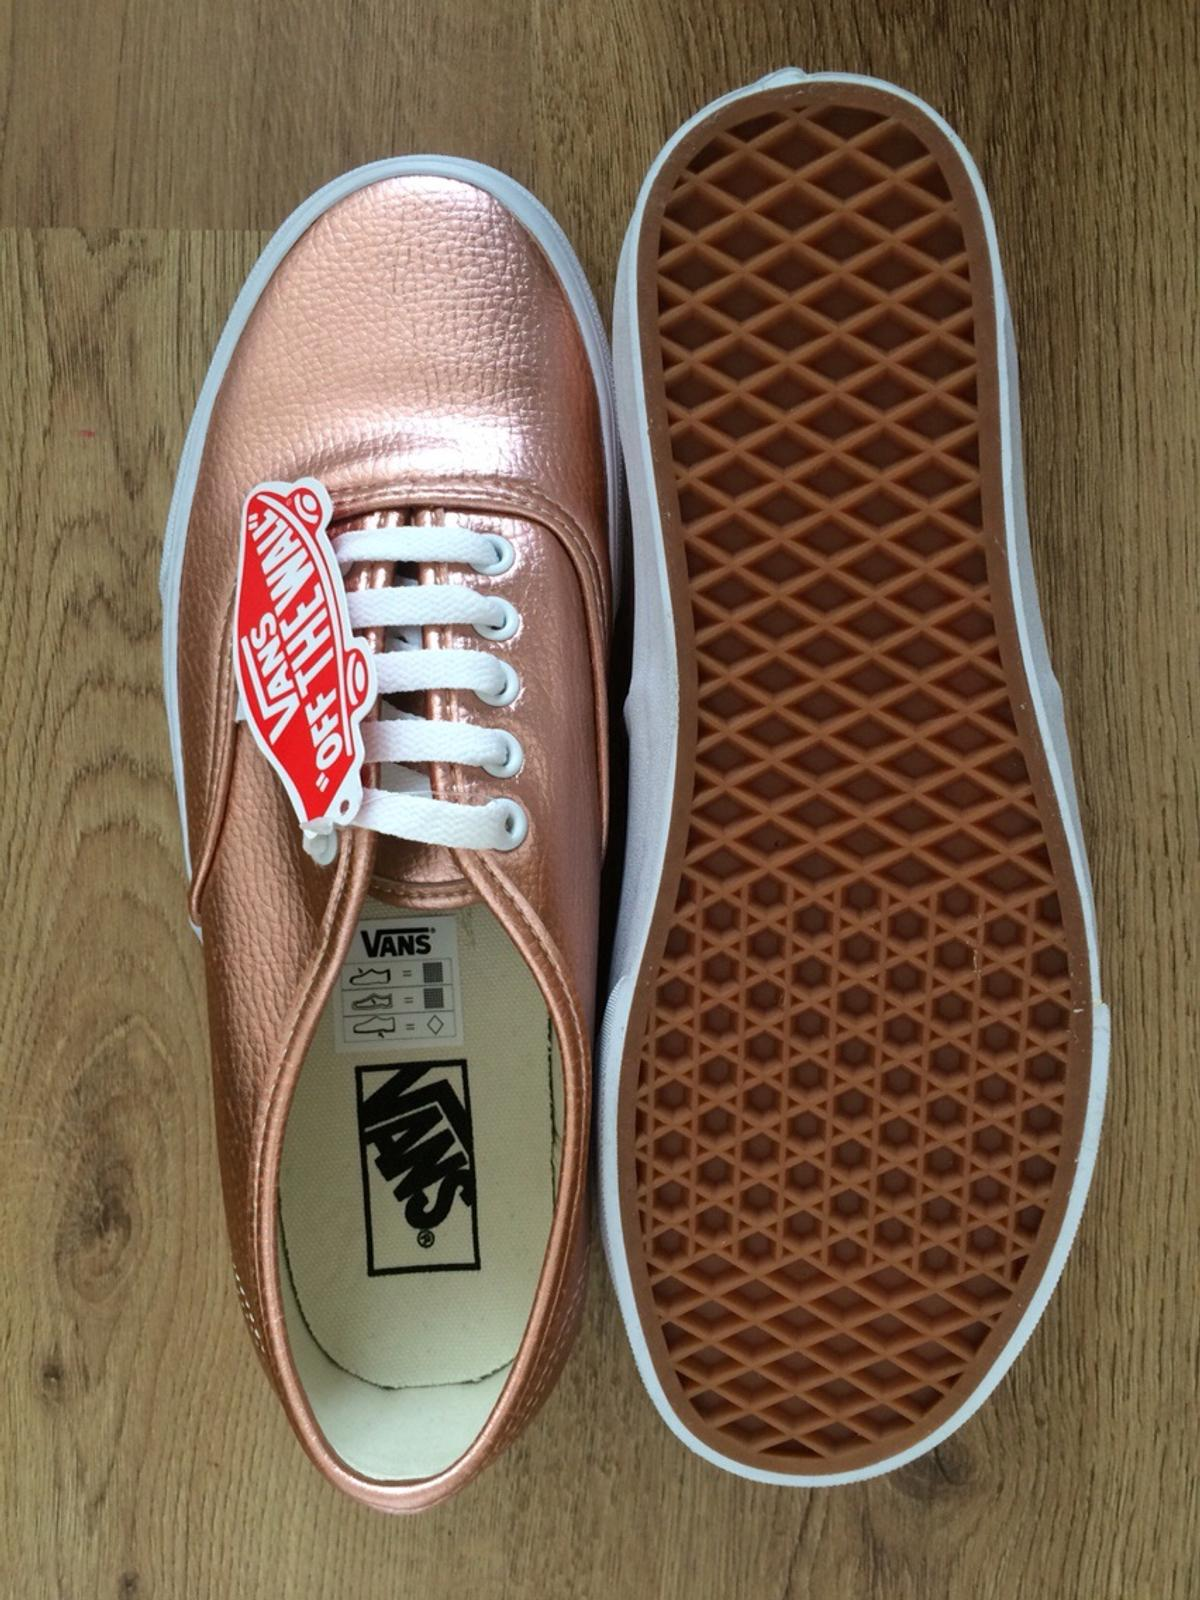 5869c2cc7f VANS AUTHENTIC Rose Gold Leather SIZE 8 UK in SE1 London for £35.00 ...